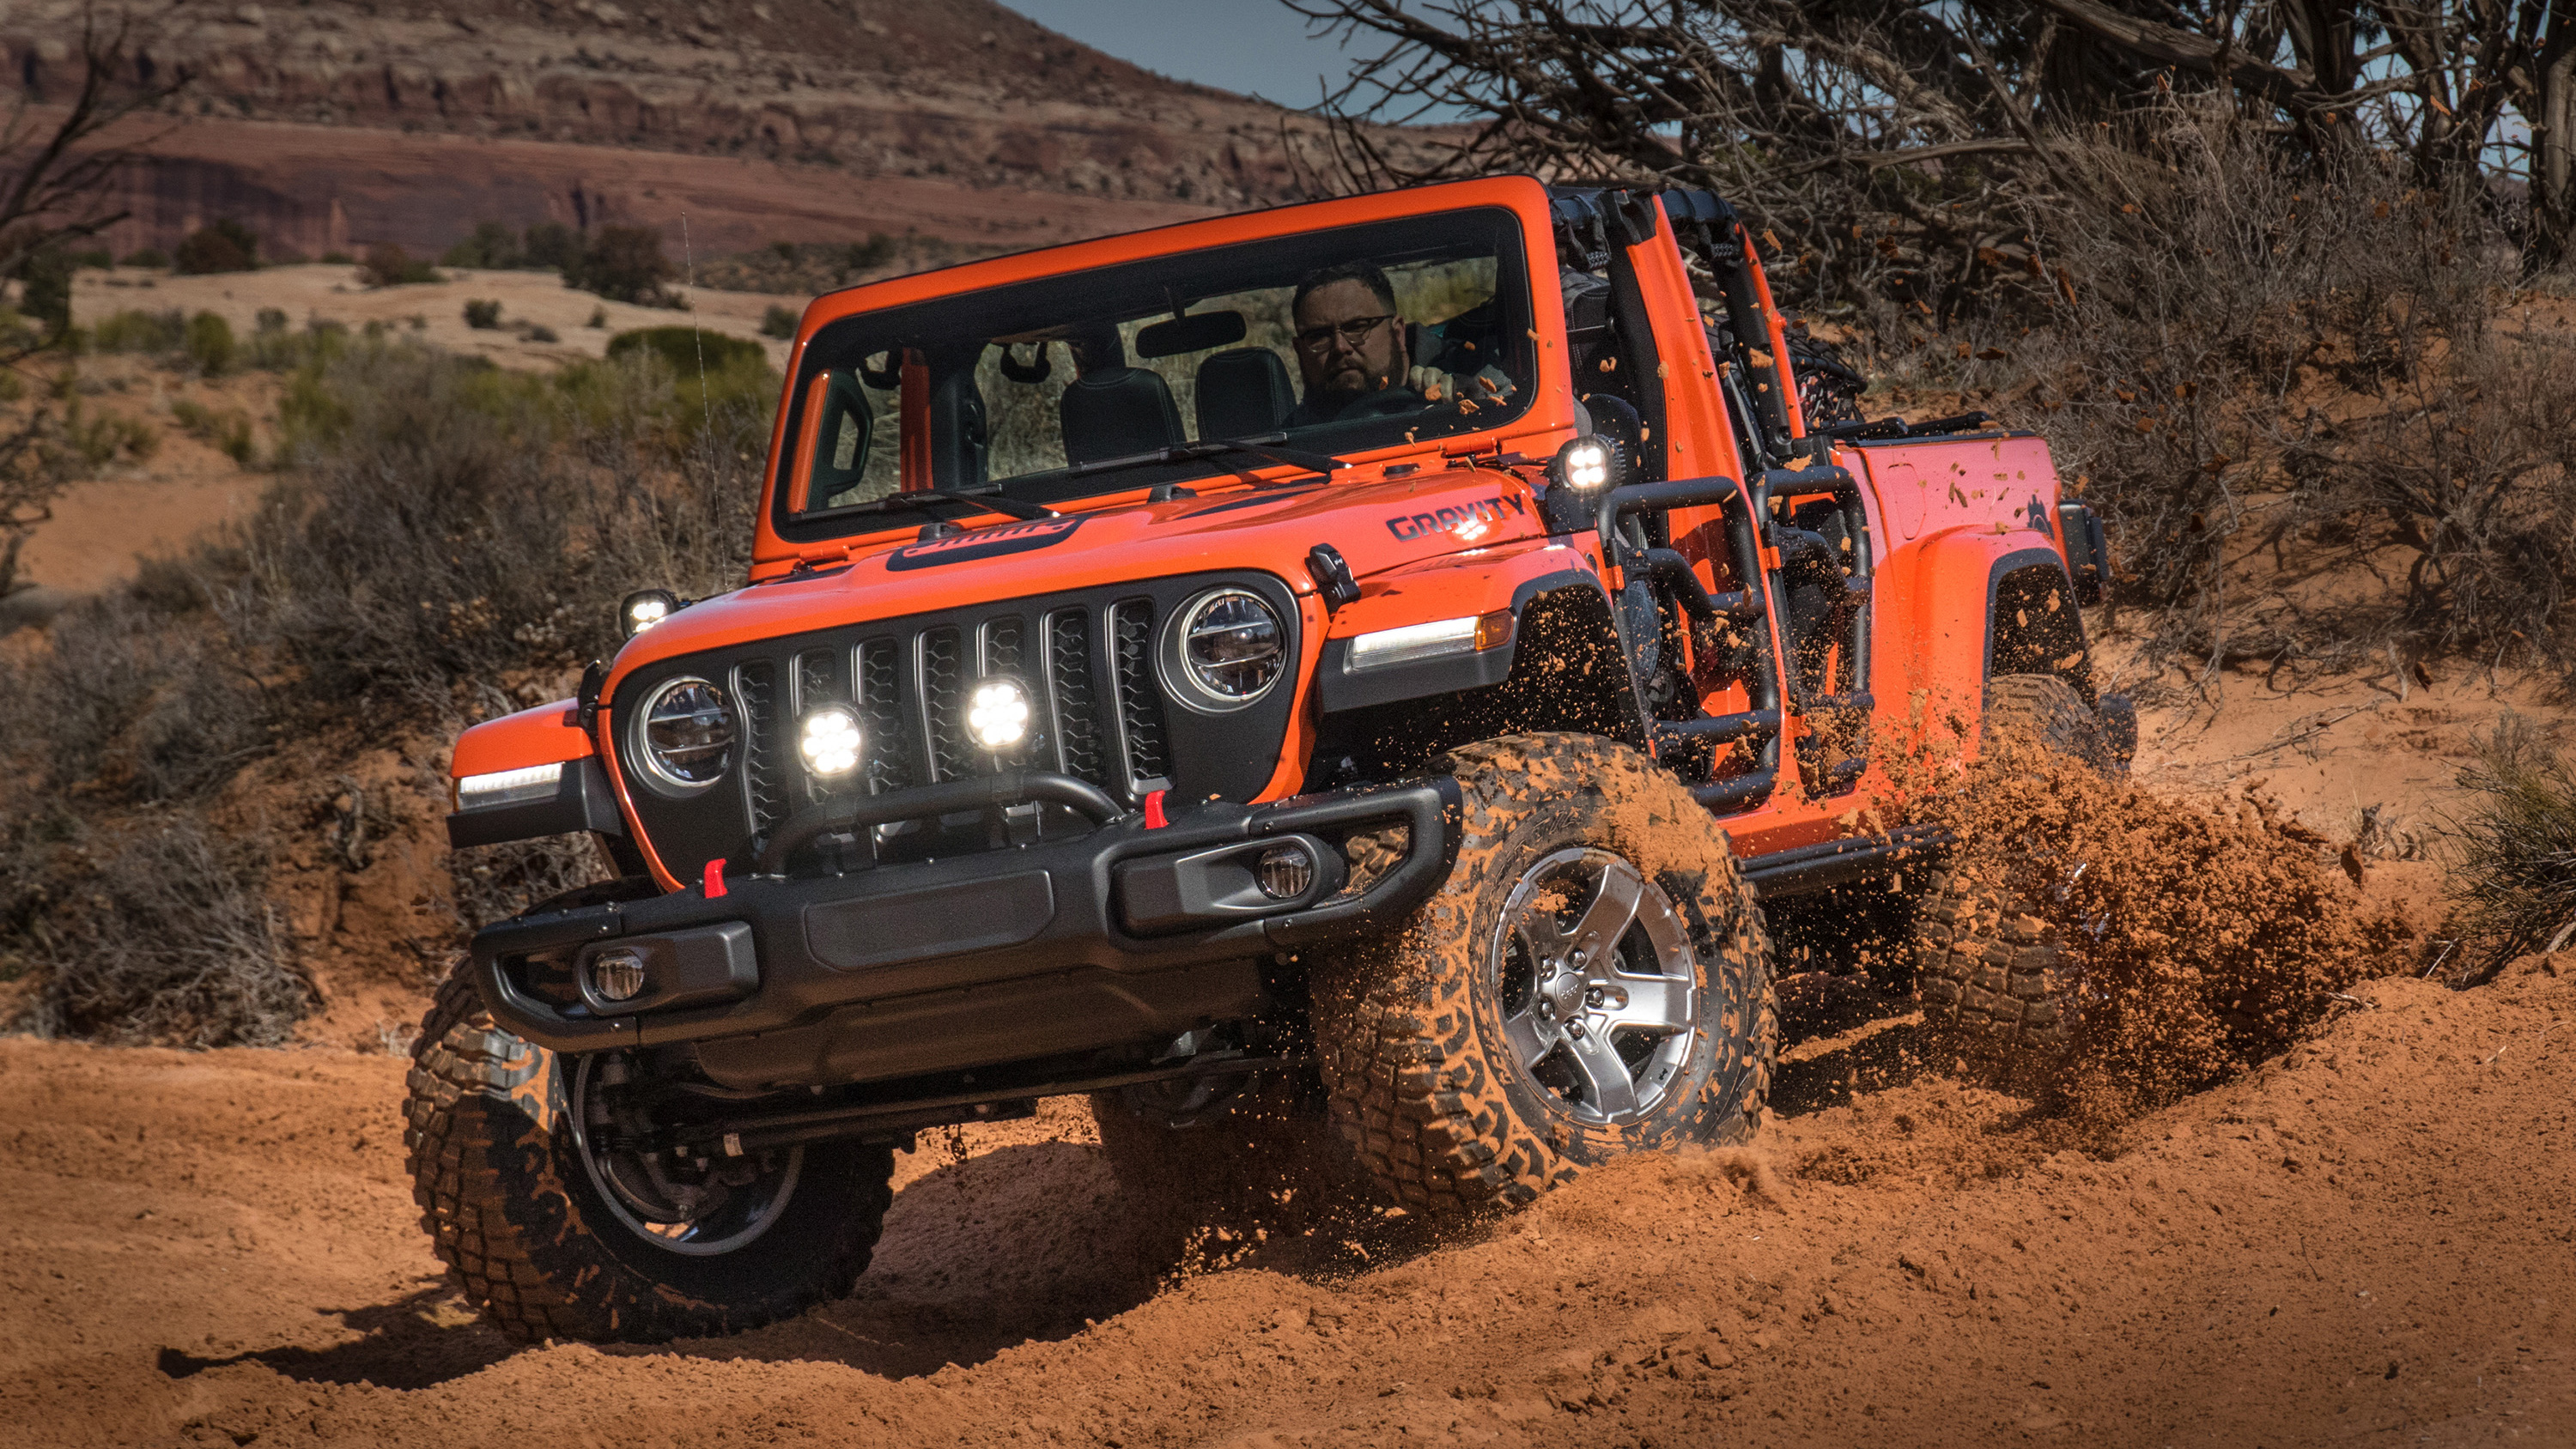 Jeep Gladiator Gravity 2019 Wallpaper HD Car Wallpapers ID 12425 3000x1688